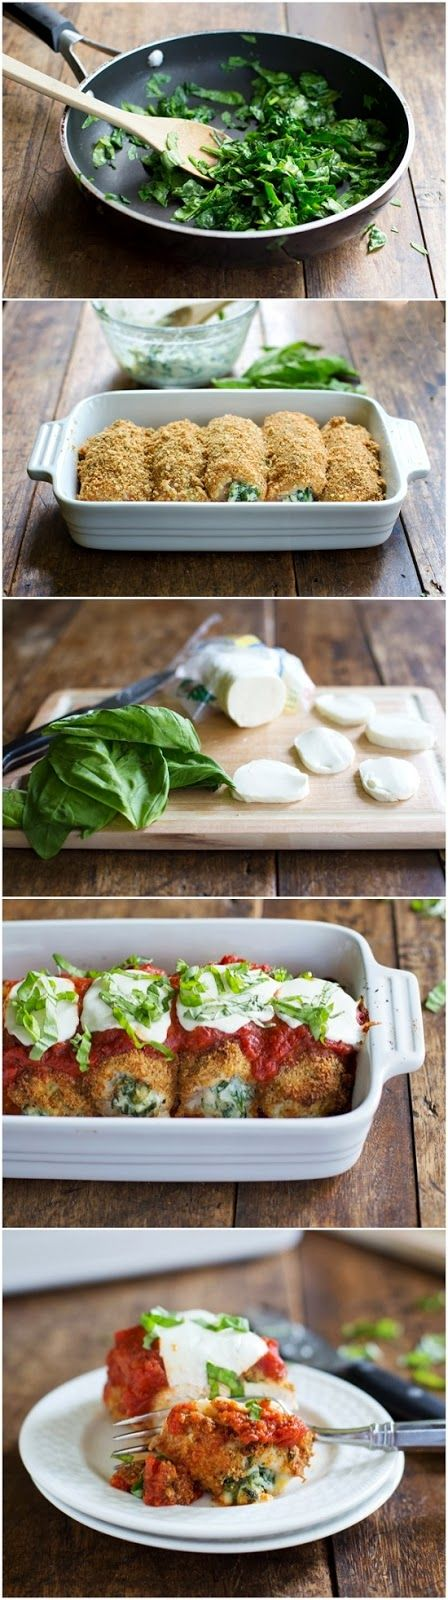 Baked Mozzarella Chicken Rolls by pinchofyum: Just 260 calories for a crispy, saucy chicken breast stuffed with spinach and ricotta. Ingr...